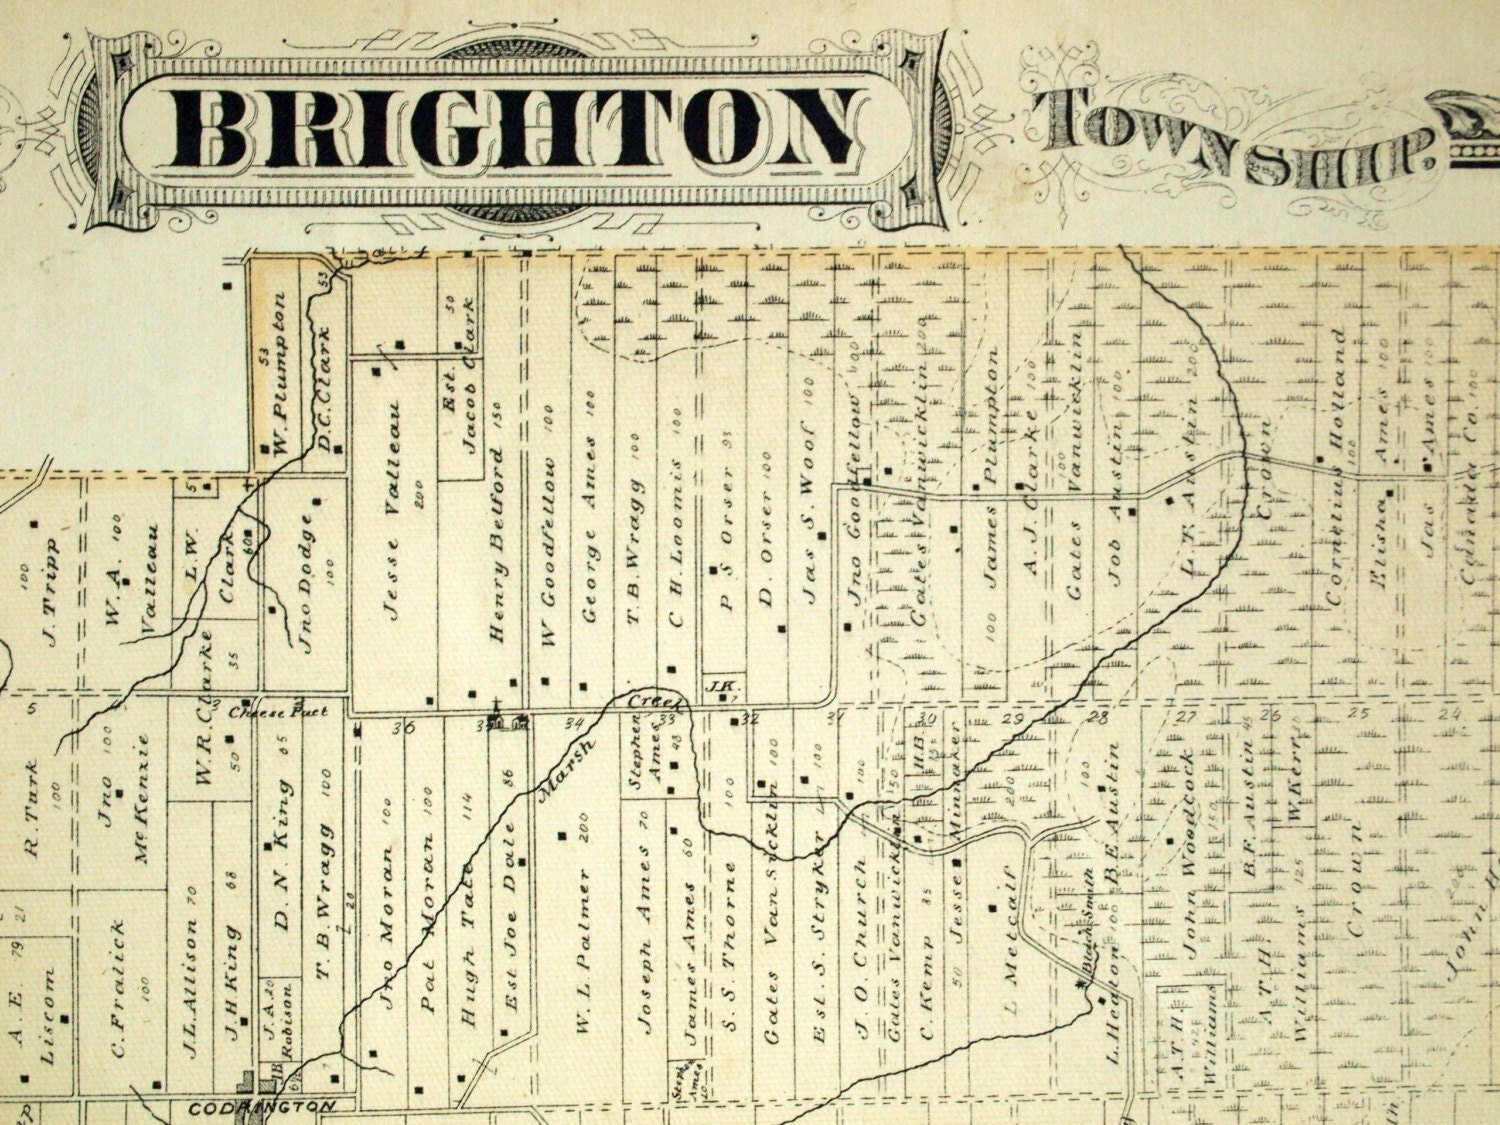 1878 Large Rare Vintage Map of Brighton Township Ontario